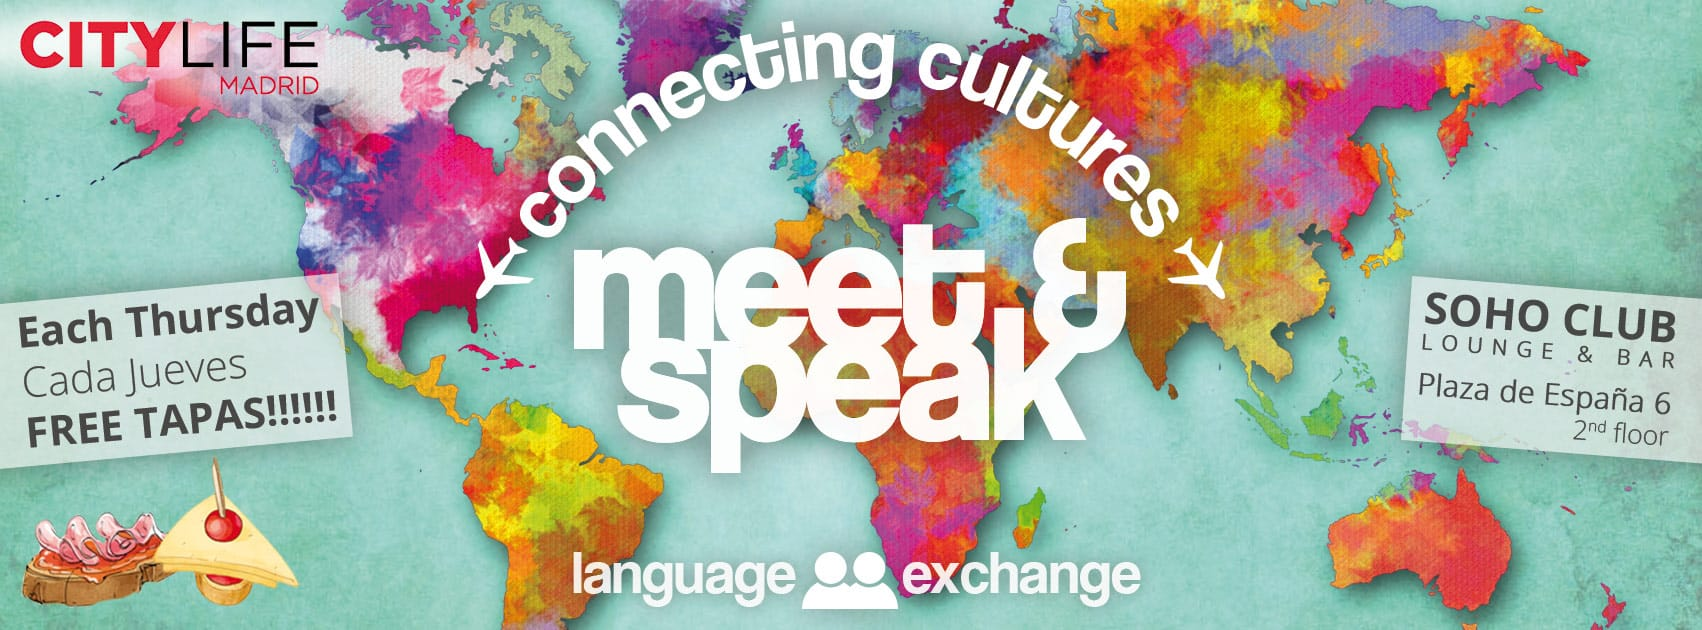 MEET & SPEAK - Connecting Cultures!